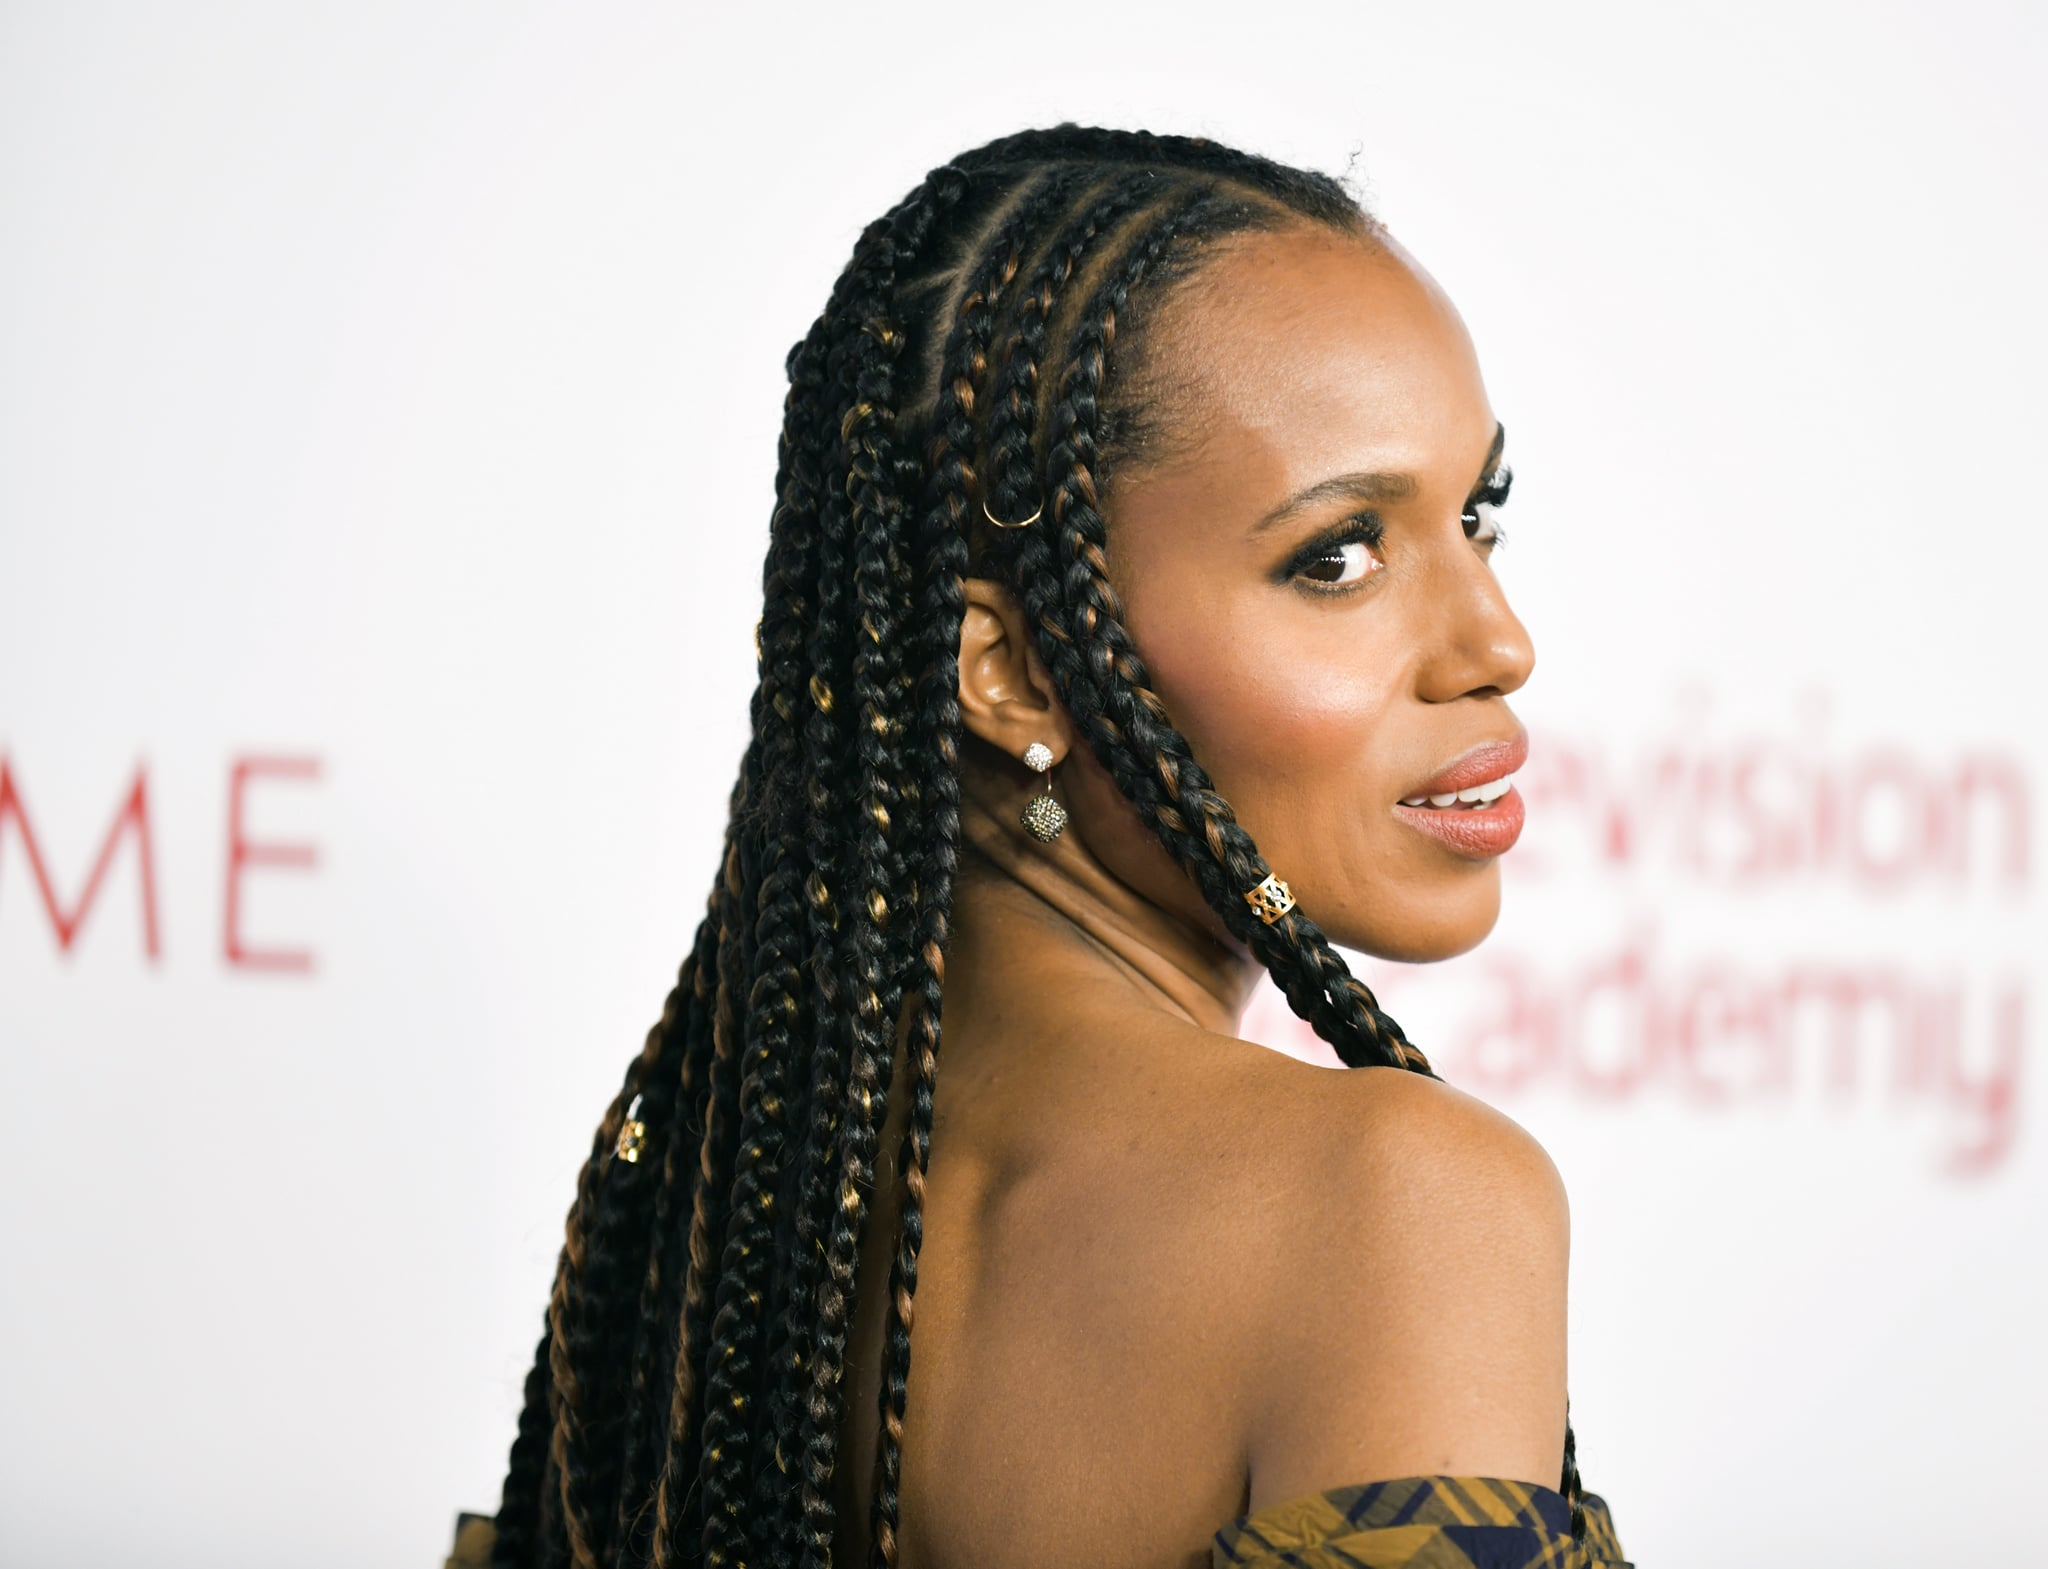 NORTH HOLLYWOOD, CALIFORNIA - JANUARY 28: Kerry Washington, hair detail, attends the Television Academy's 25th Hall Of Fame Induction Ceremony at Saban Media Center on January 28, 2020 in North Hollywood, California. (Photo by Rodin Eckenroth/FilmMagic)